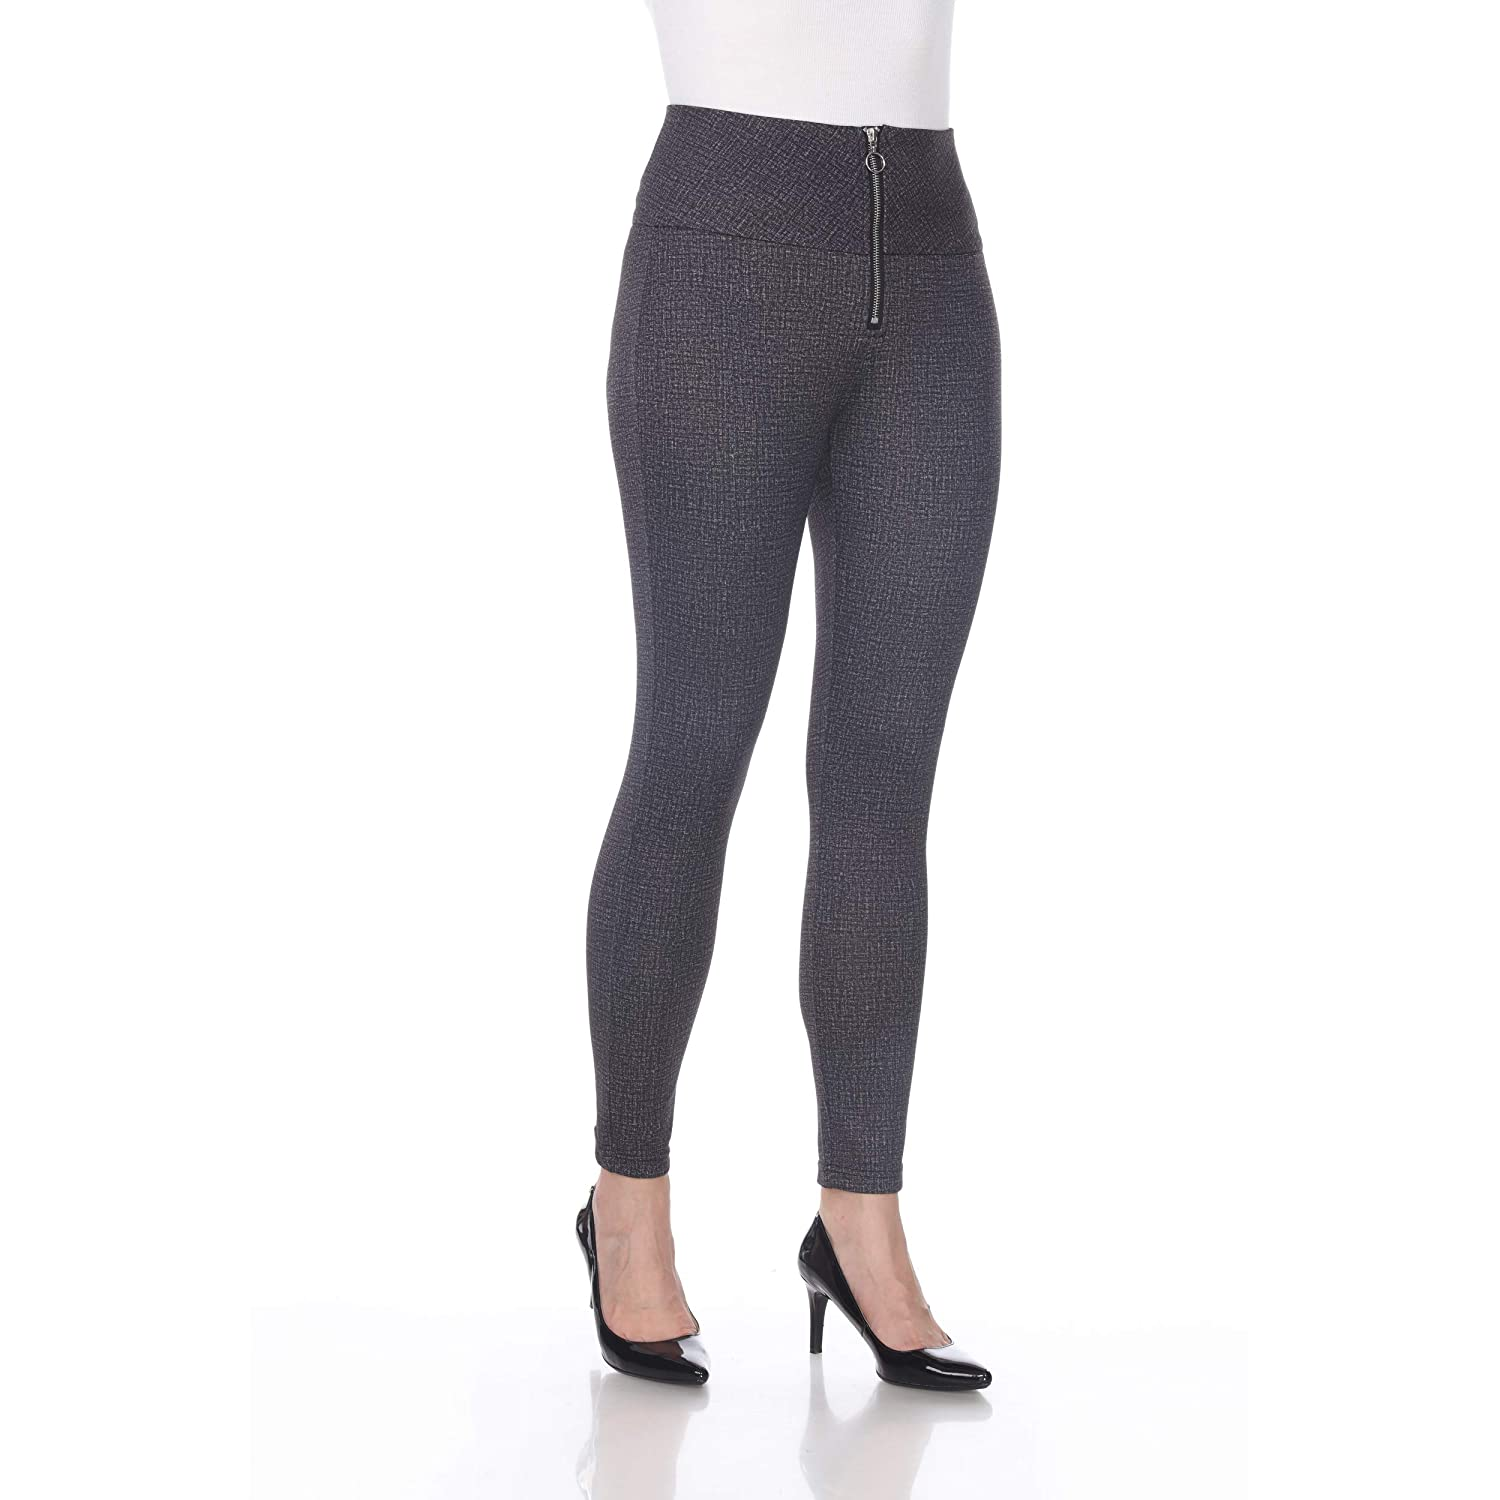 2772471854 Blue Sunset Women's Grey Front Zipper Mesh Lined Ponte Pant Full Length  Leggings